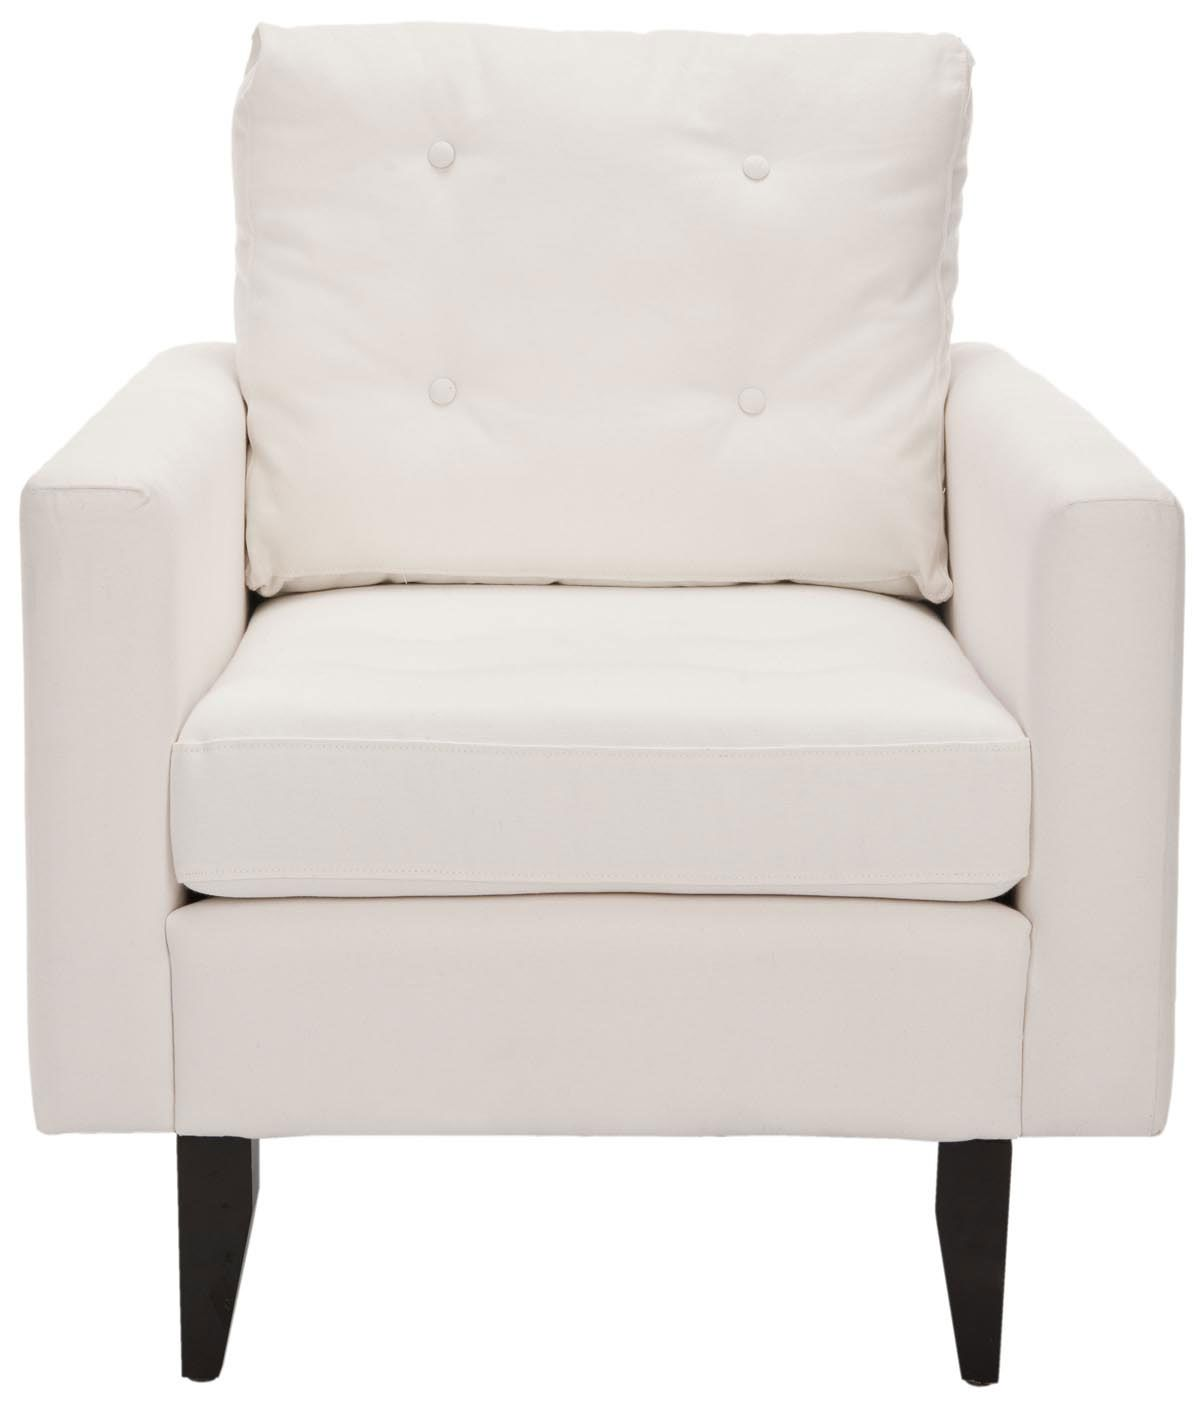 Mcr4569a Accent Chairs Furniture By 9636 Ramon Valley